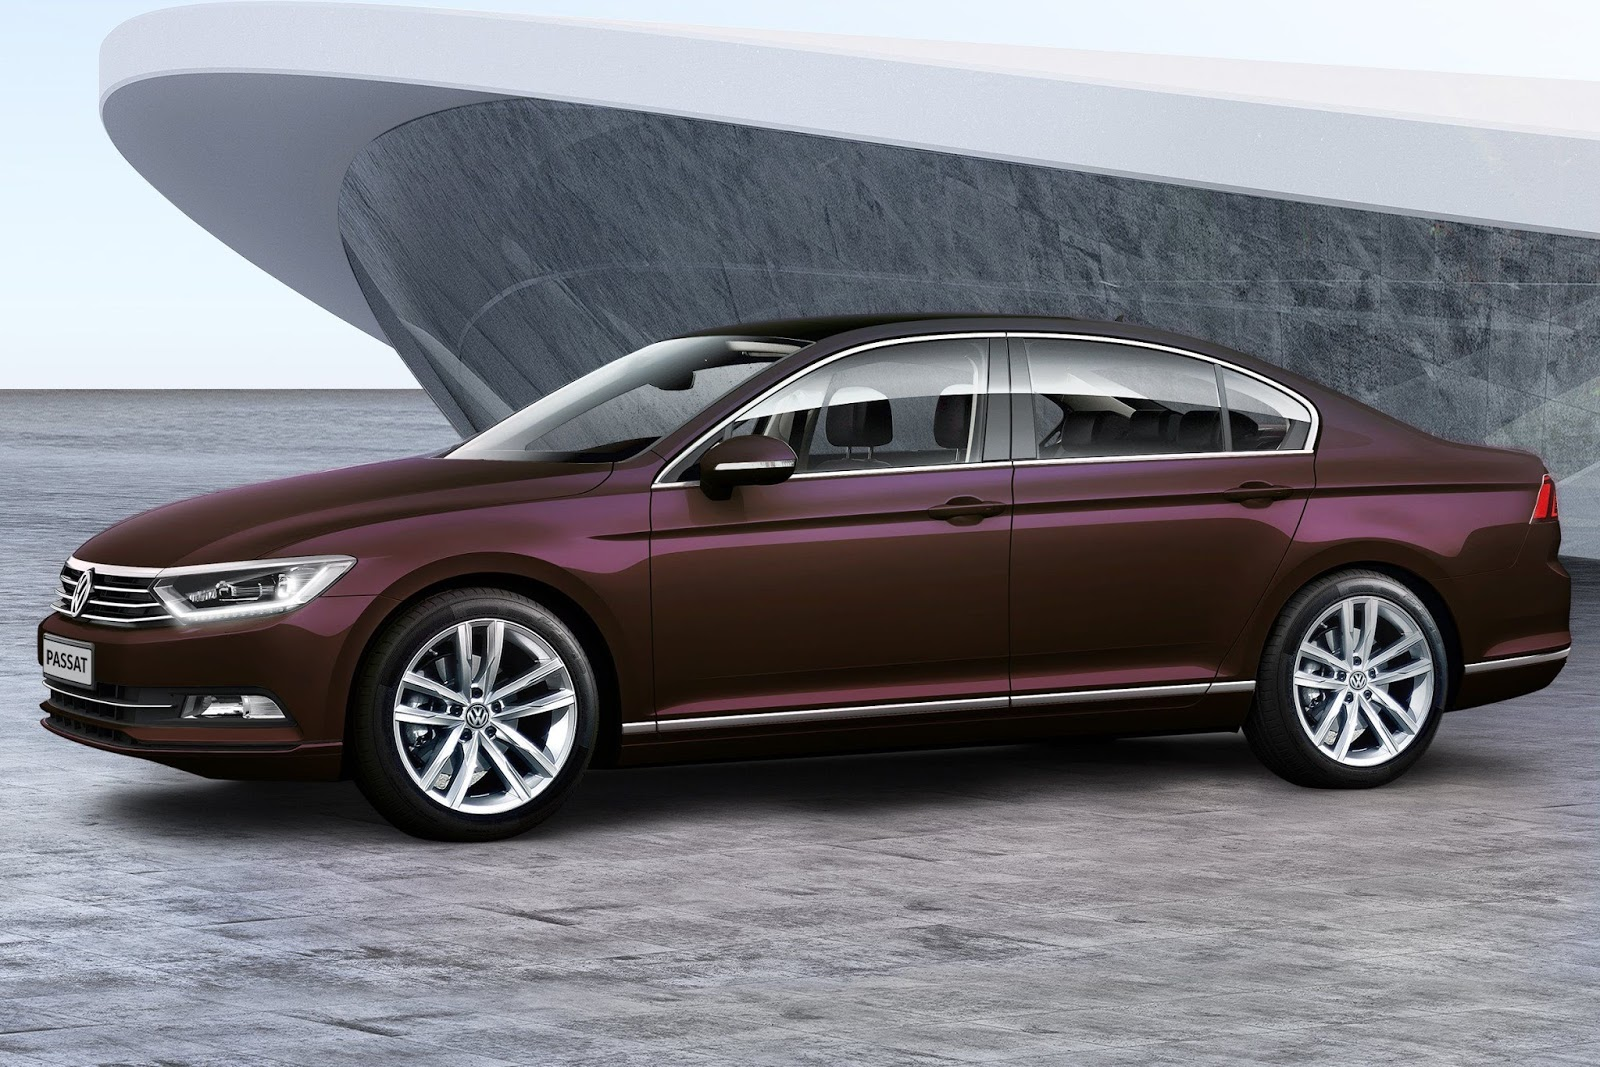 This initial powertrain set up will be joined by a tdi turbo diesel engine soon making the passat the only one in the executive sedan class to offer both